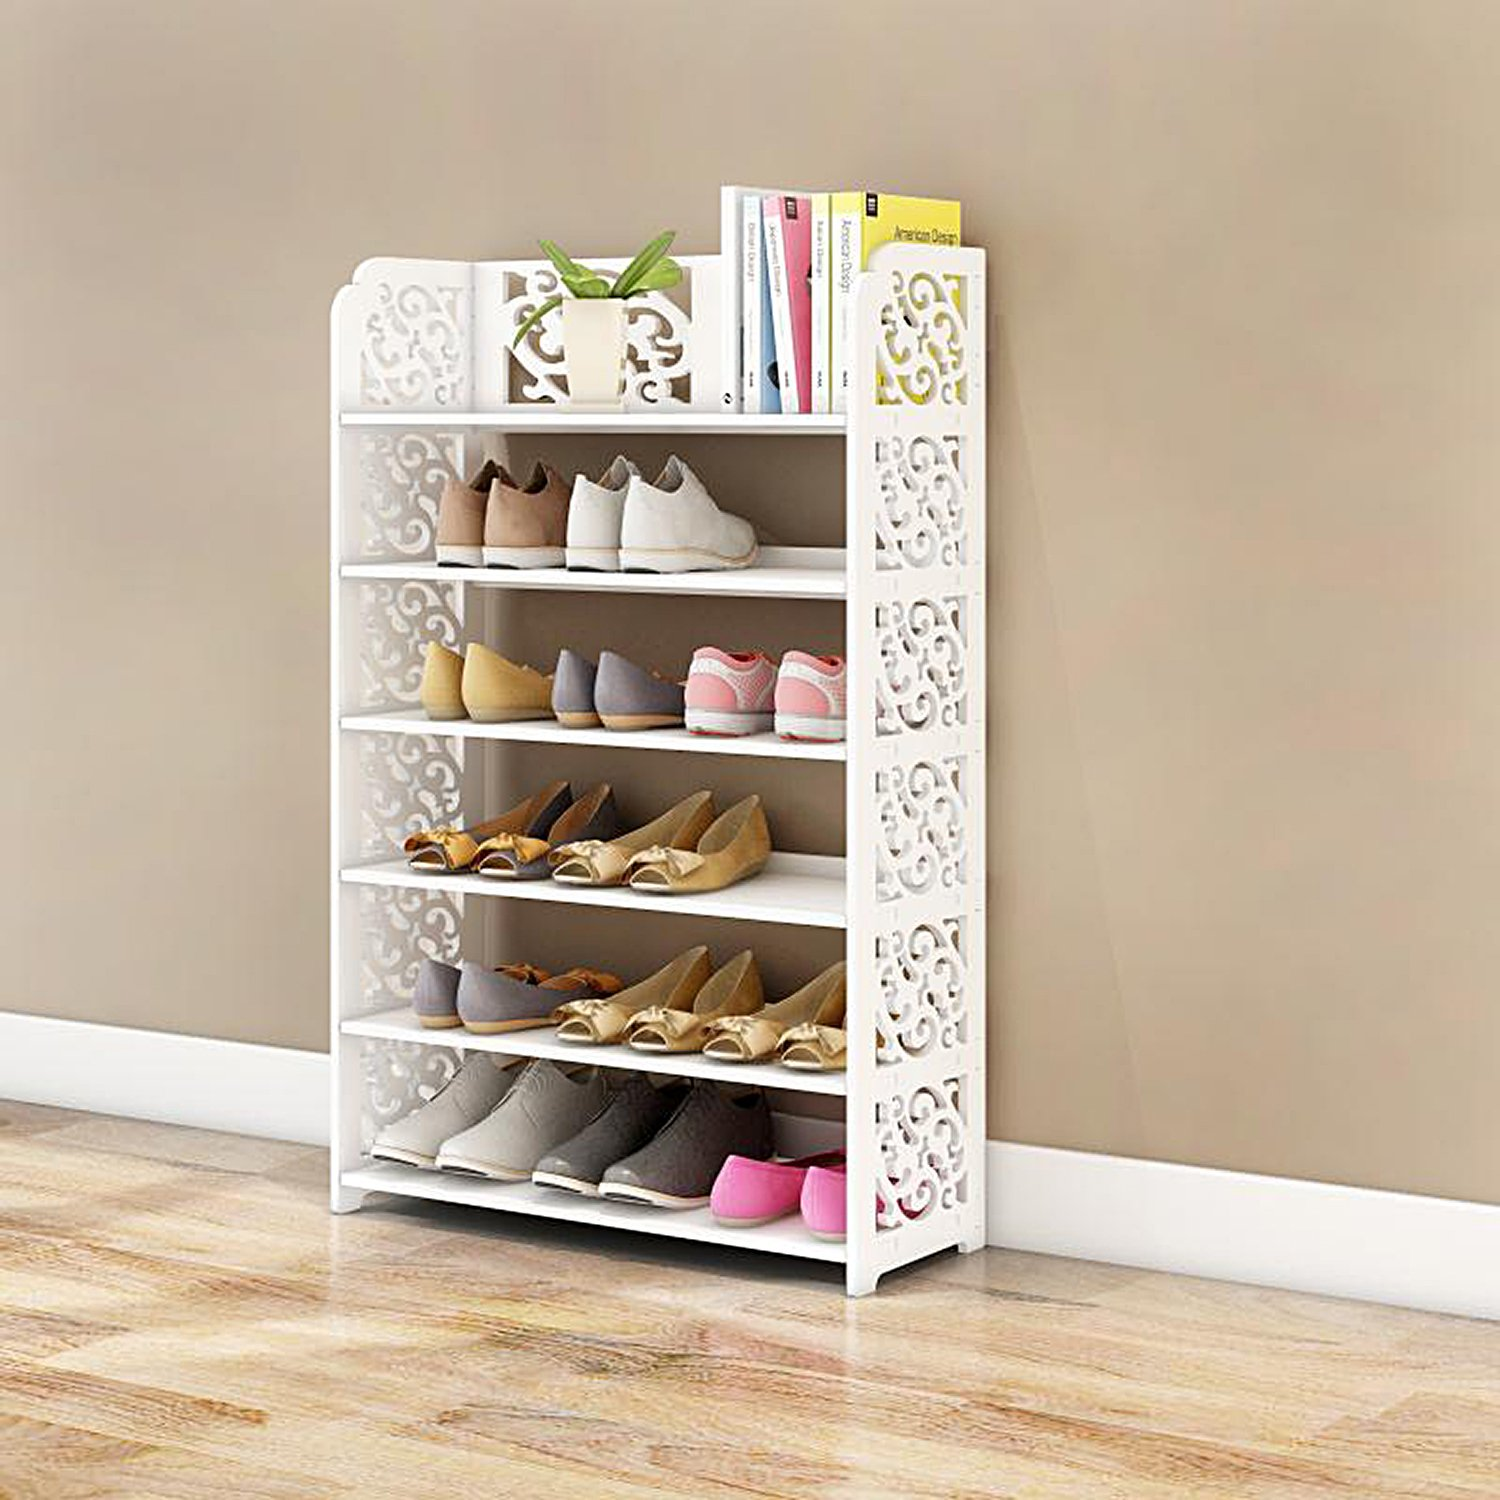 DL furniture - WPC Multipurpose Shoe Rack & Book Shelf L23.5'' x W9.5'' x H38'' 6 Tier Tall & Wide, Environmental Friendly Material | White… by DL furniture (Image #2)